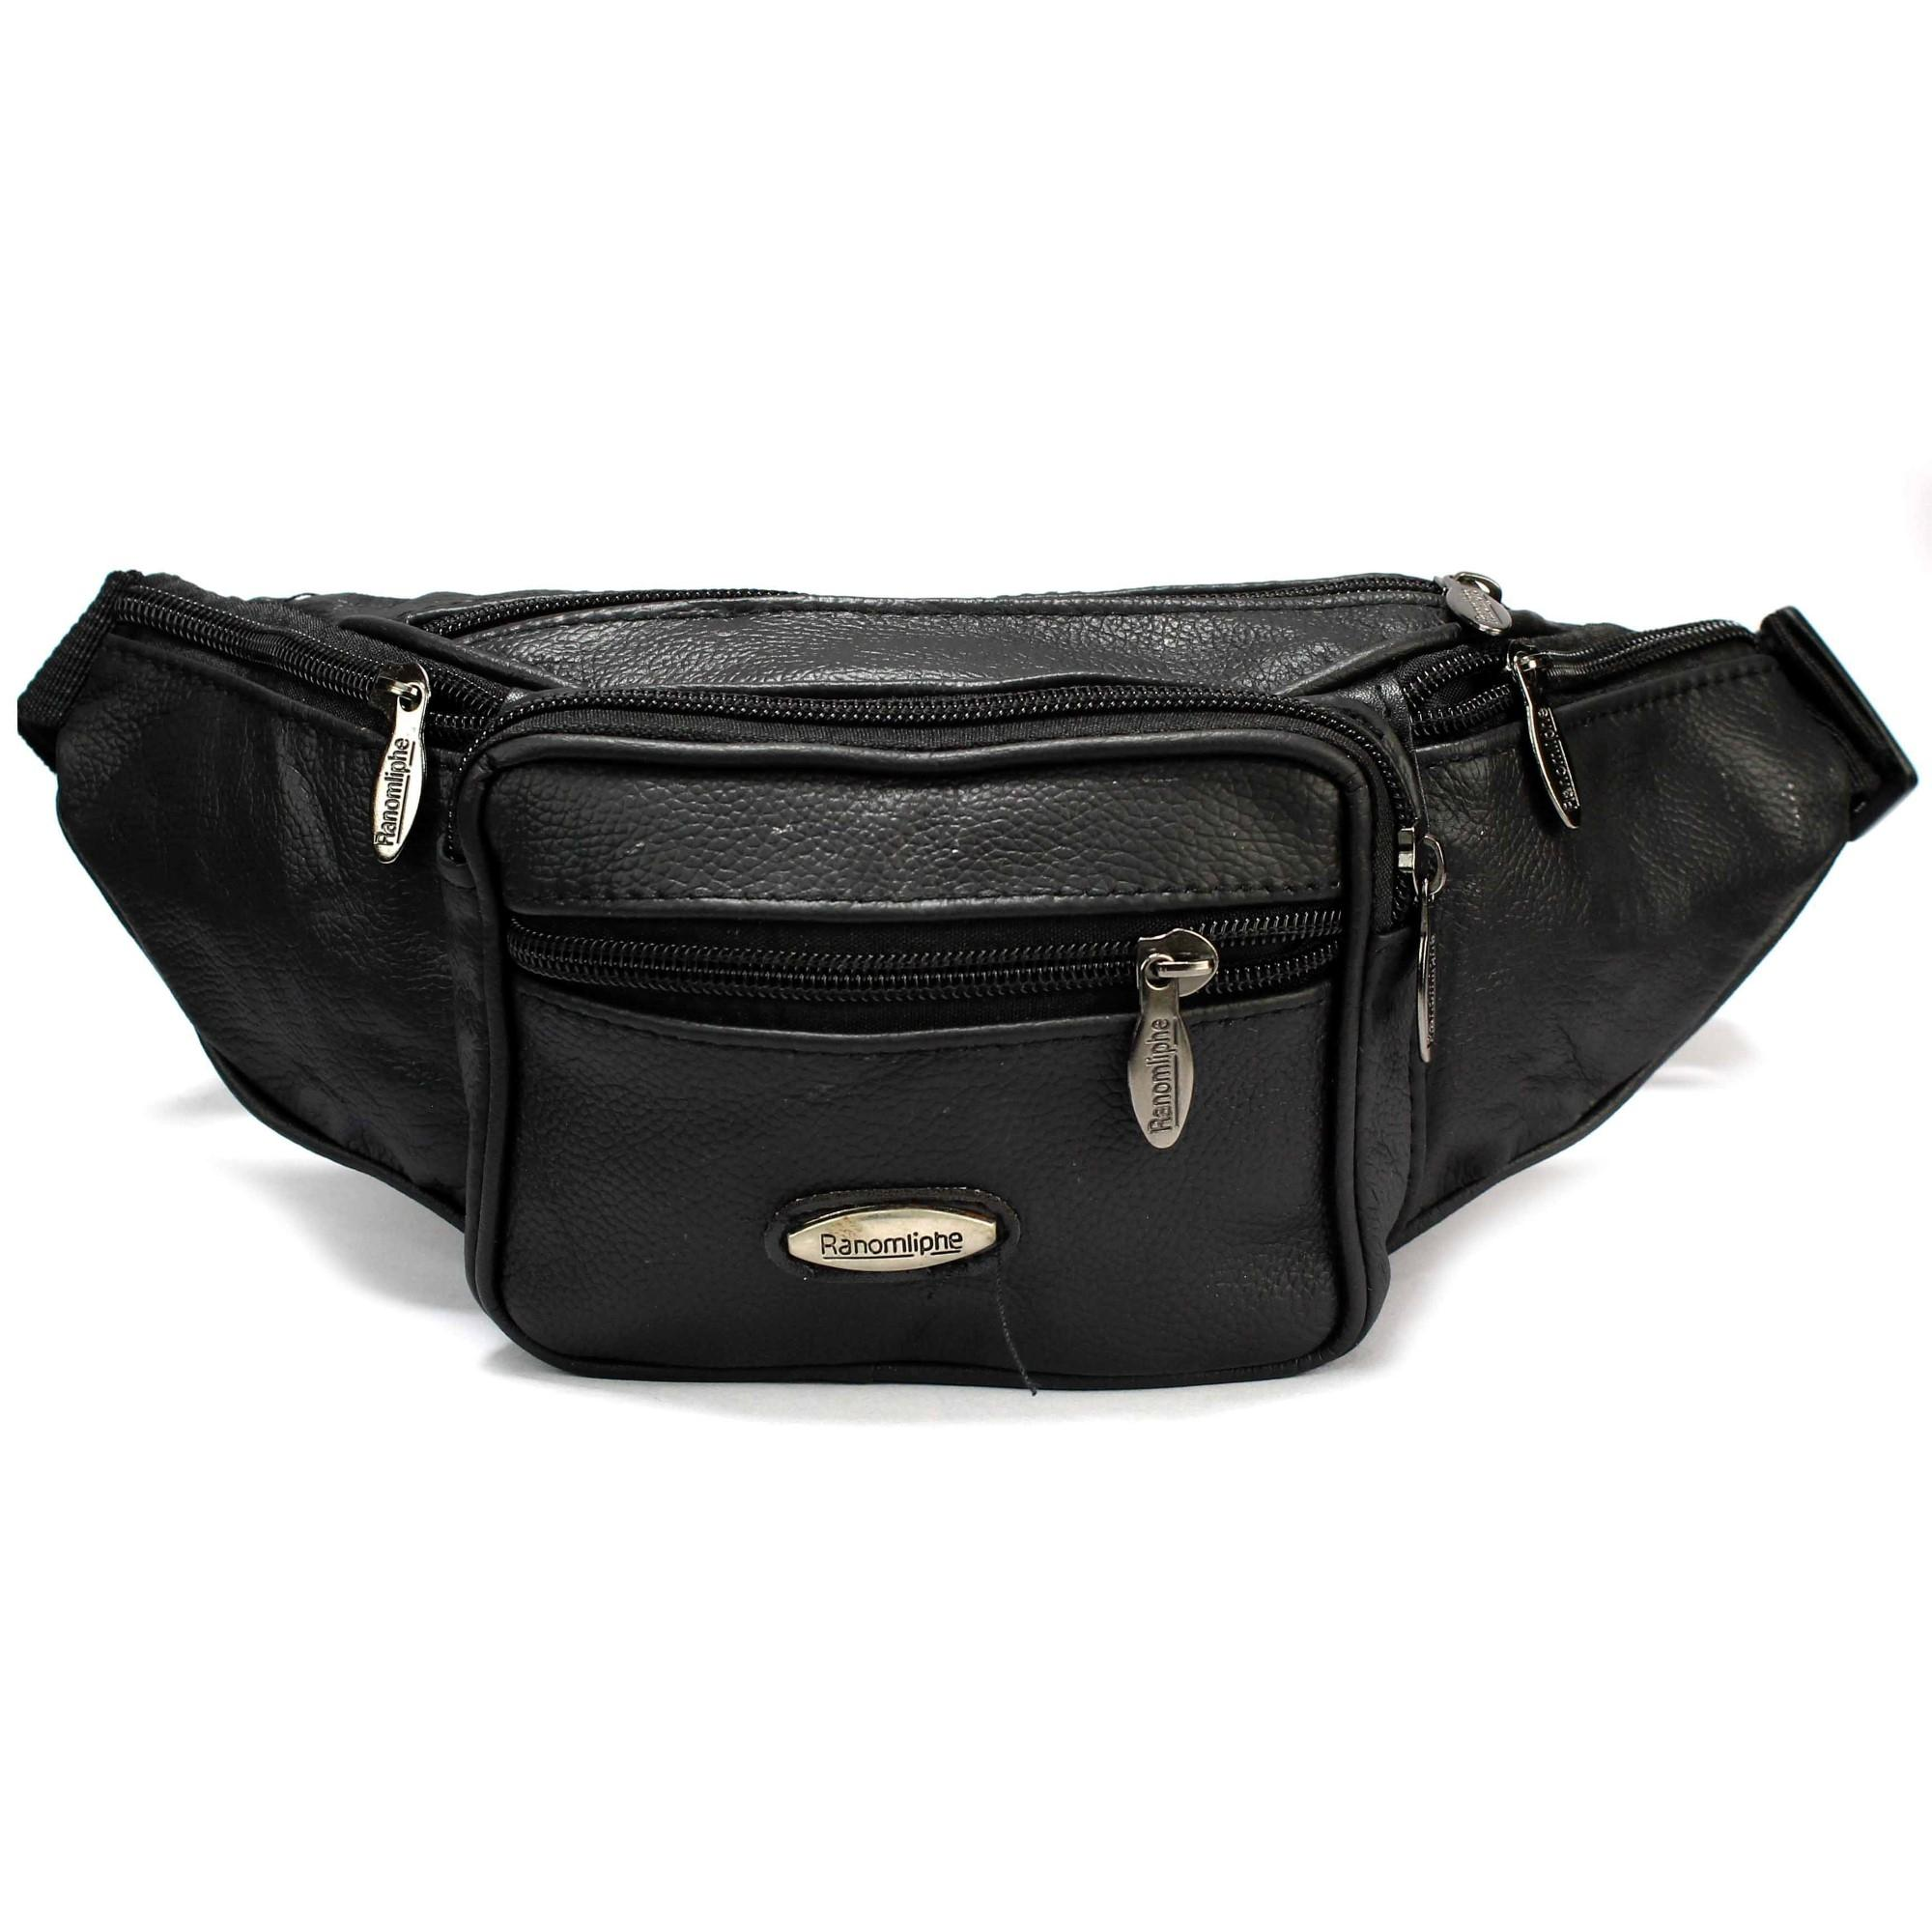 7a8653da0940 Mens Leather Backpack Briefcase- Fenix Toulouse Handball